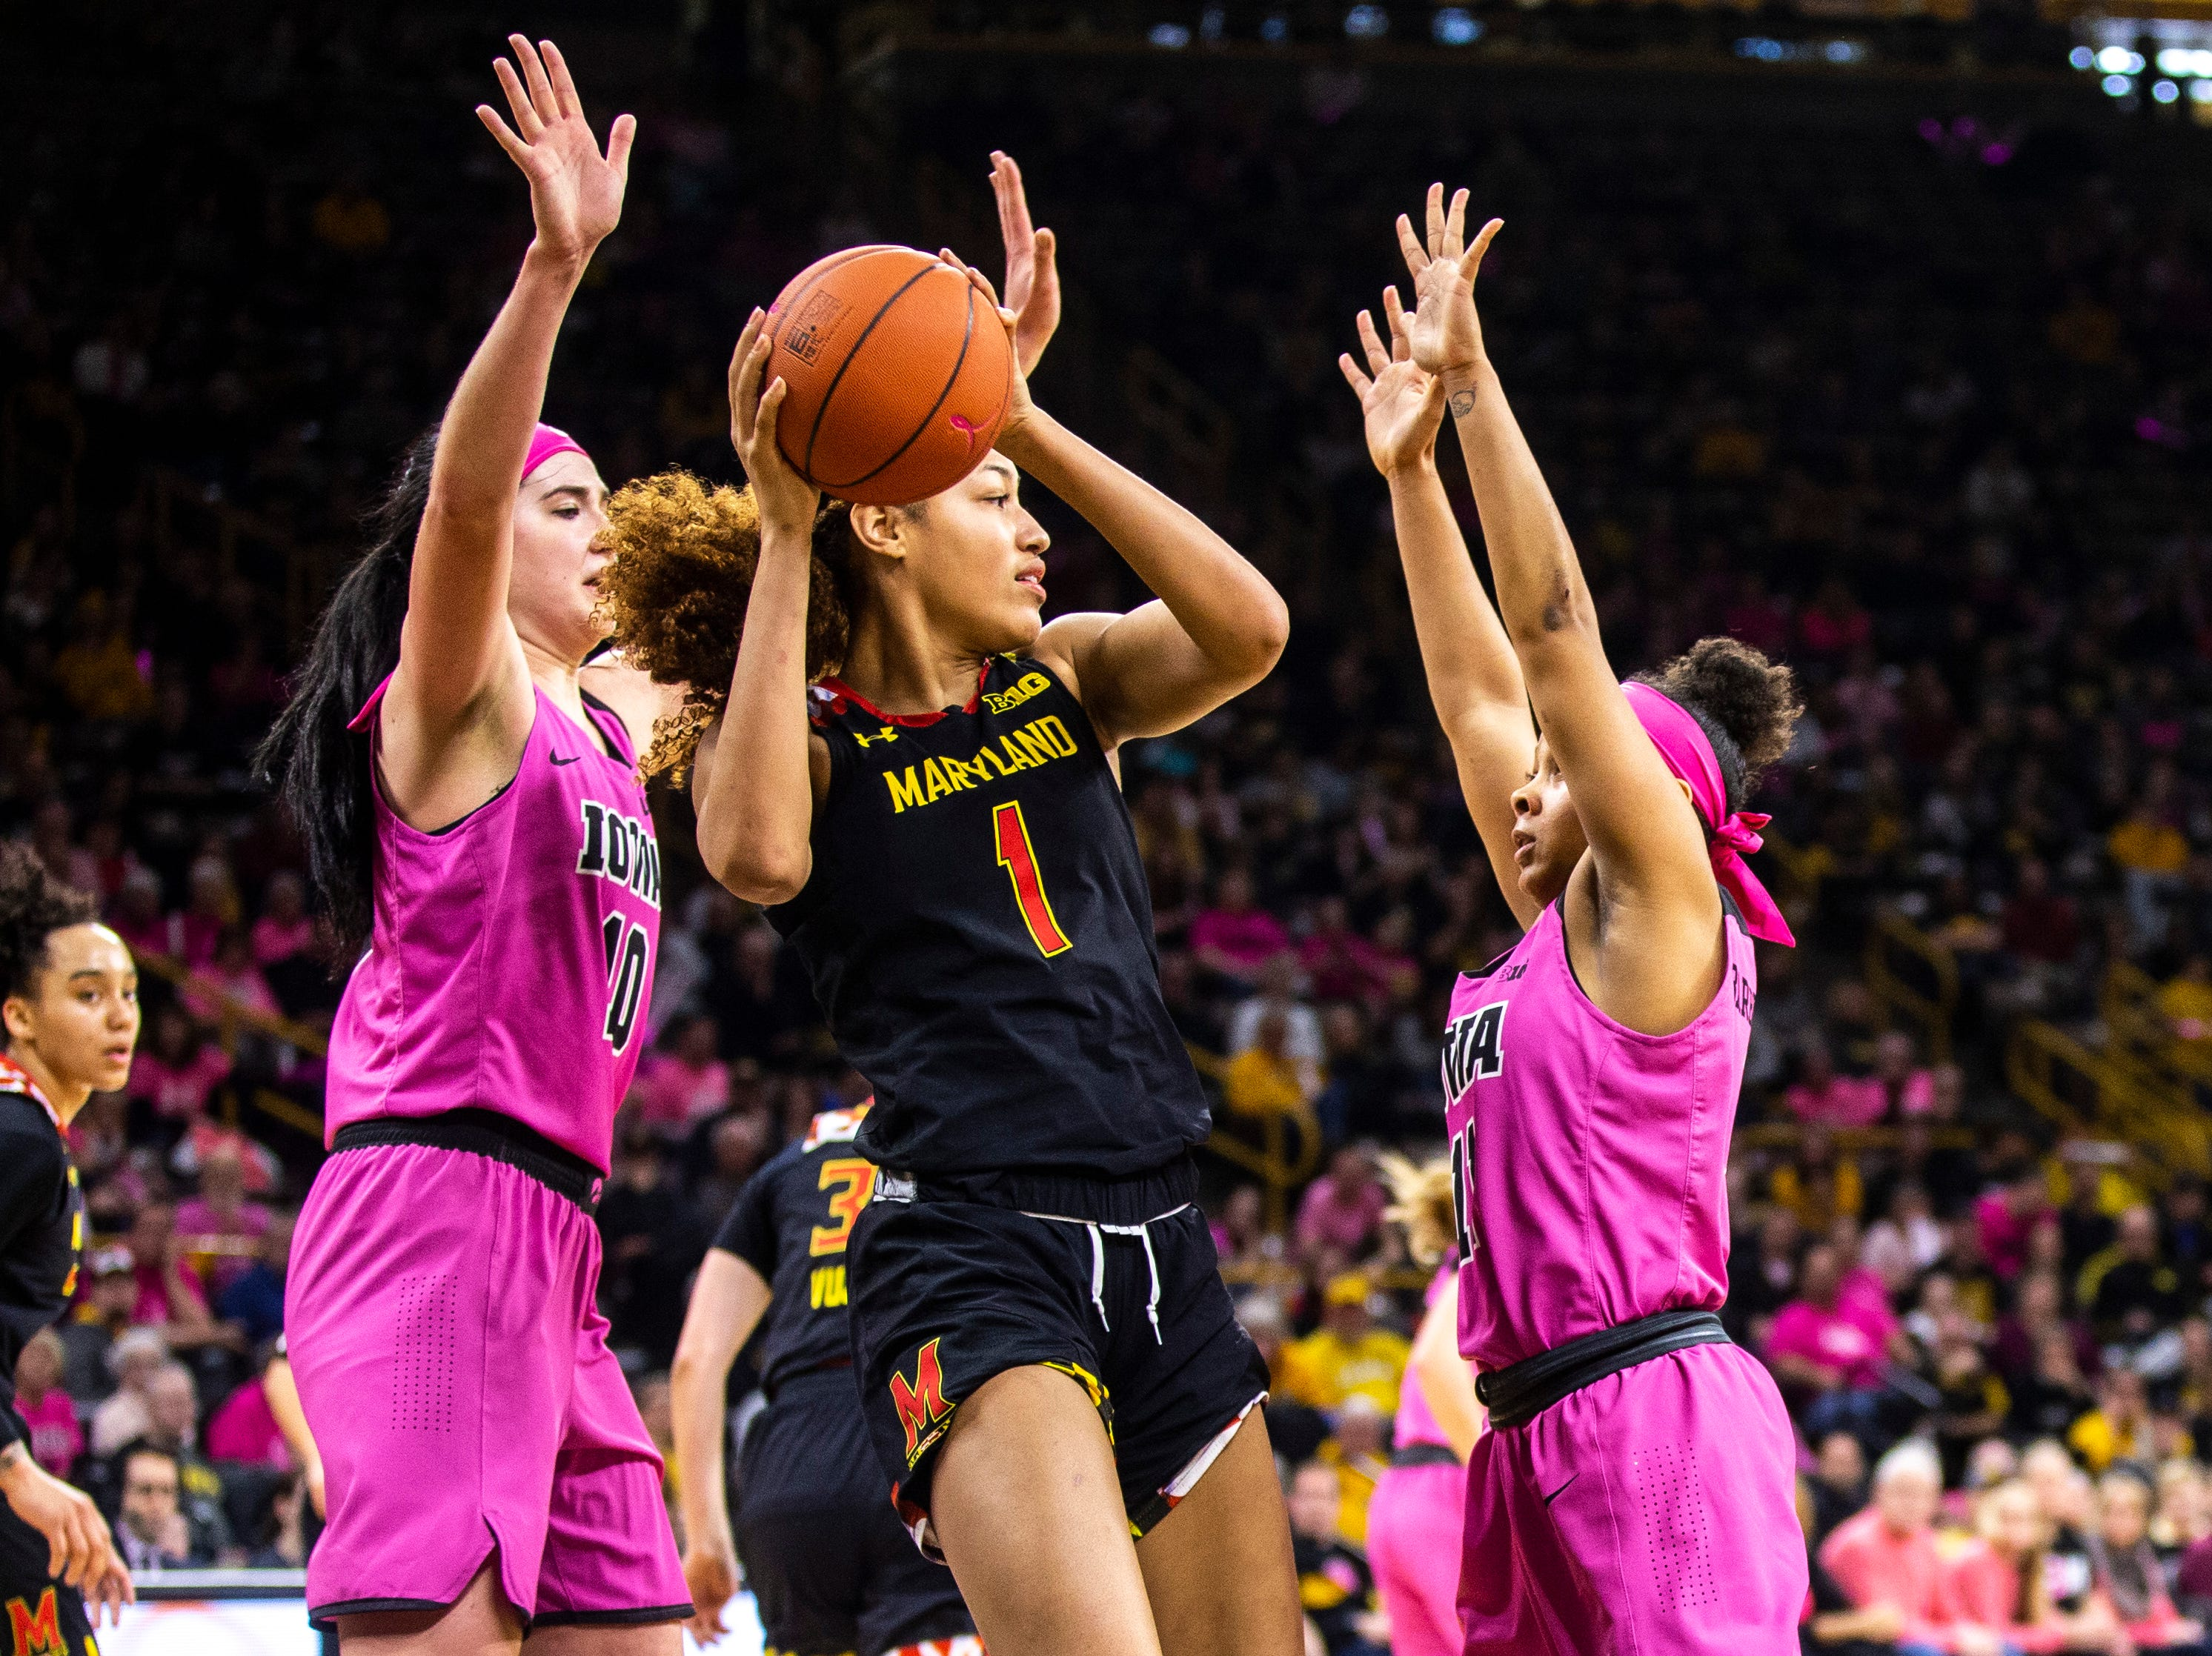 Maryland forward Shakira Austin (1) looks to pass after pulling down a rebound while Iowa center Megan Gustafson (10) and Iowa guard Tania Davis, right, defend during a NCAA Big Ten Conference women's basketball game on Sunday, Feb. 17, 2019 at Carver-Hawkeye Arena in Iowa City, Iowa.